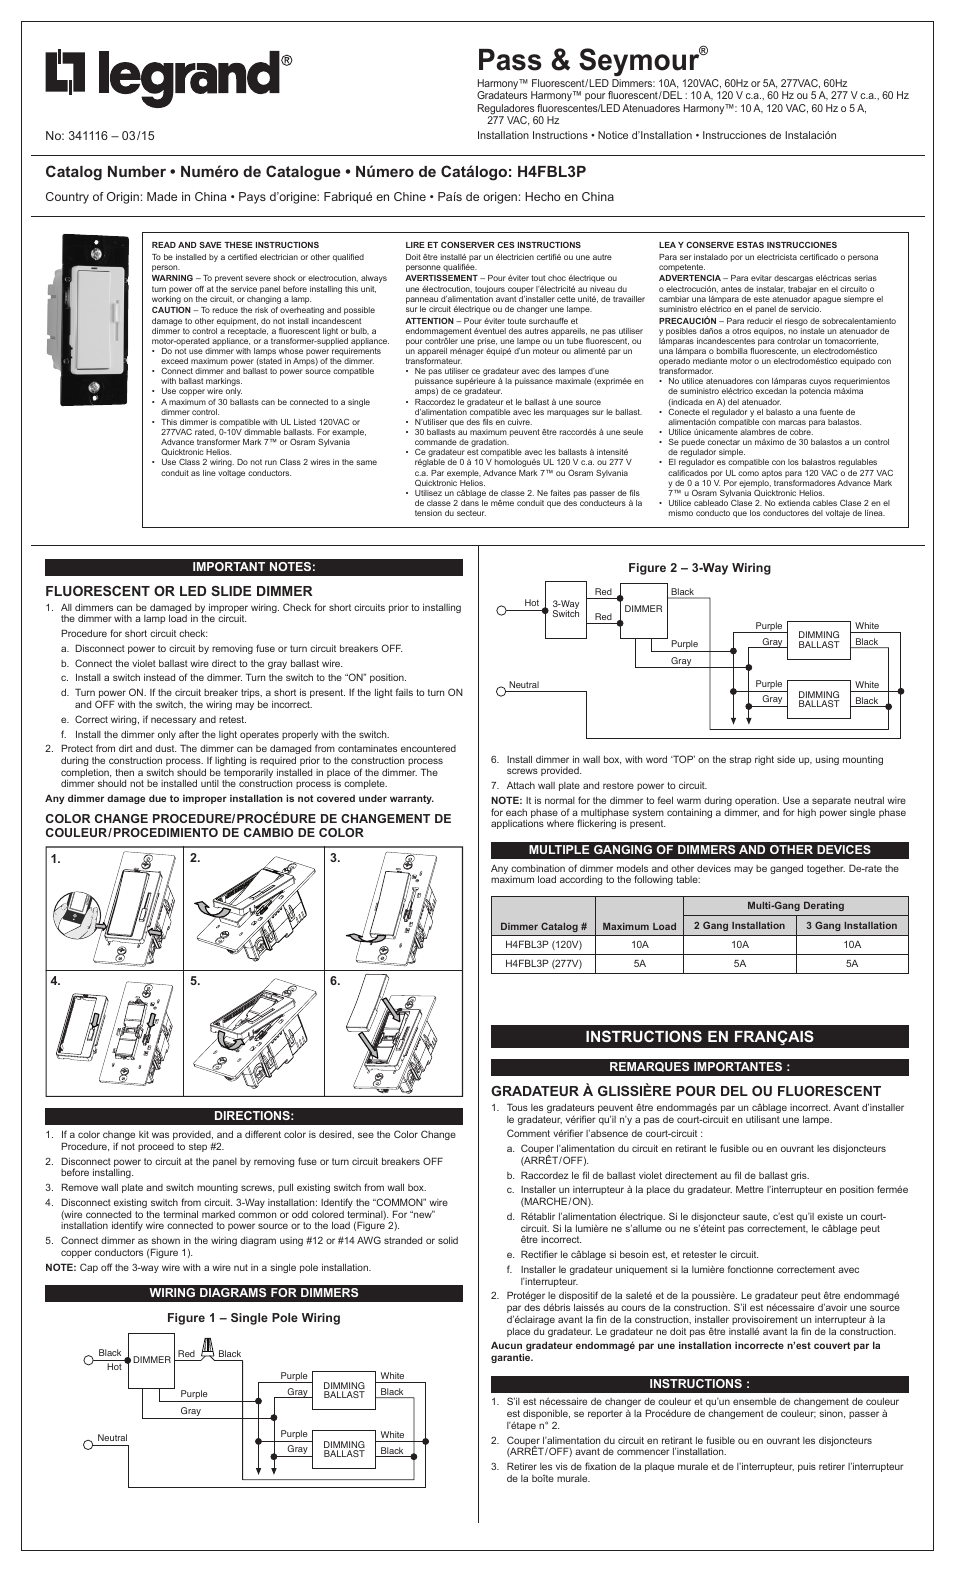 Harmony Dimmer Wiring Diagram Diagrams Scematic Led Legrand H4fbl3p User Manual 2 Pages Also For Td703p Chandelier